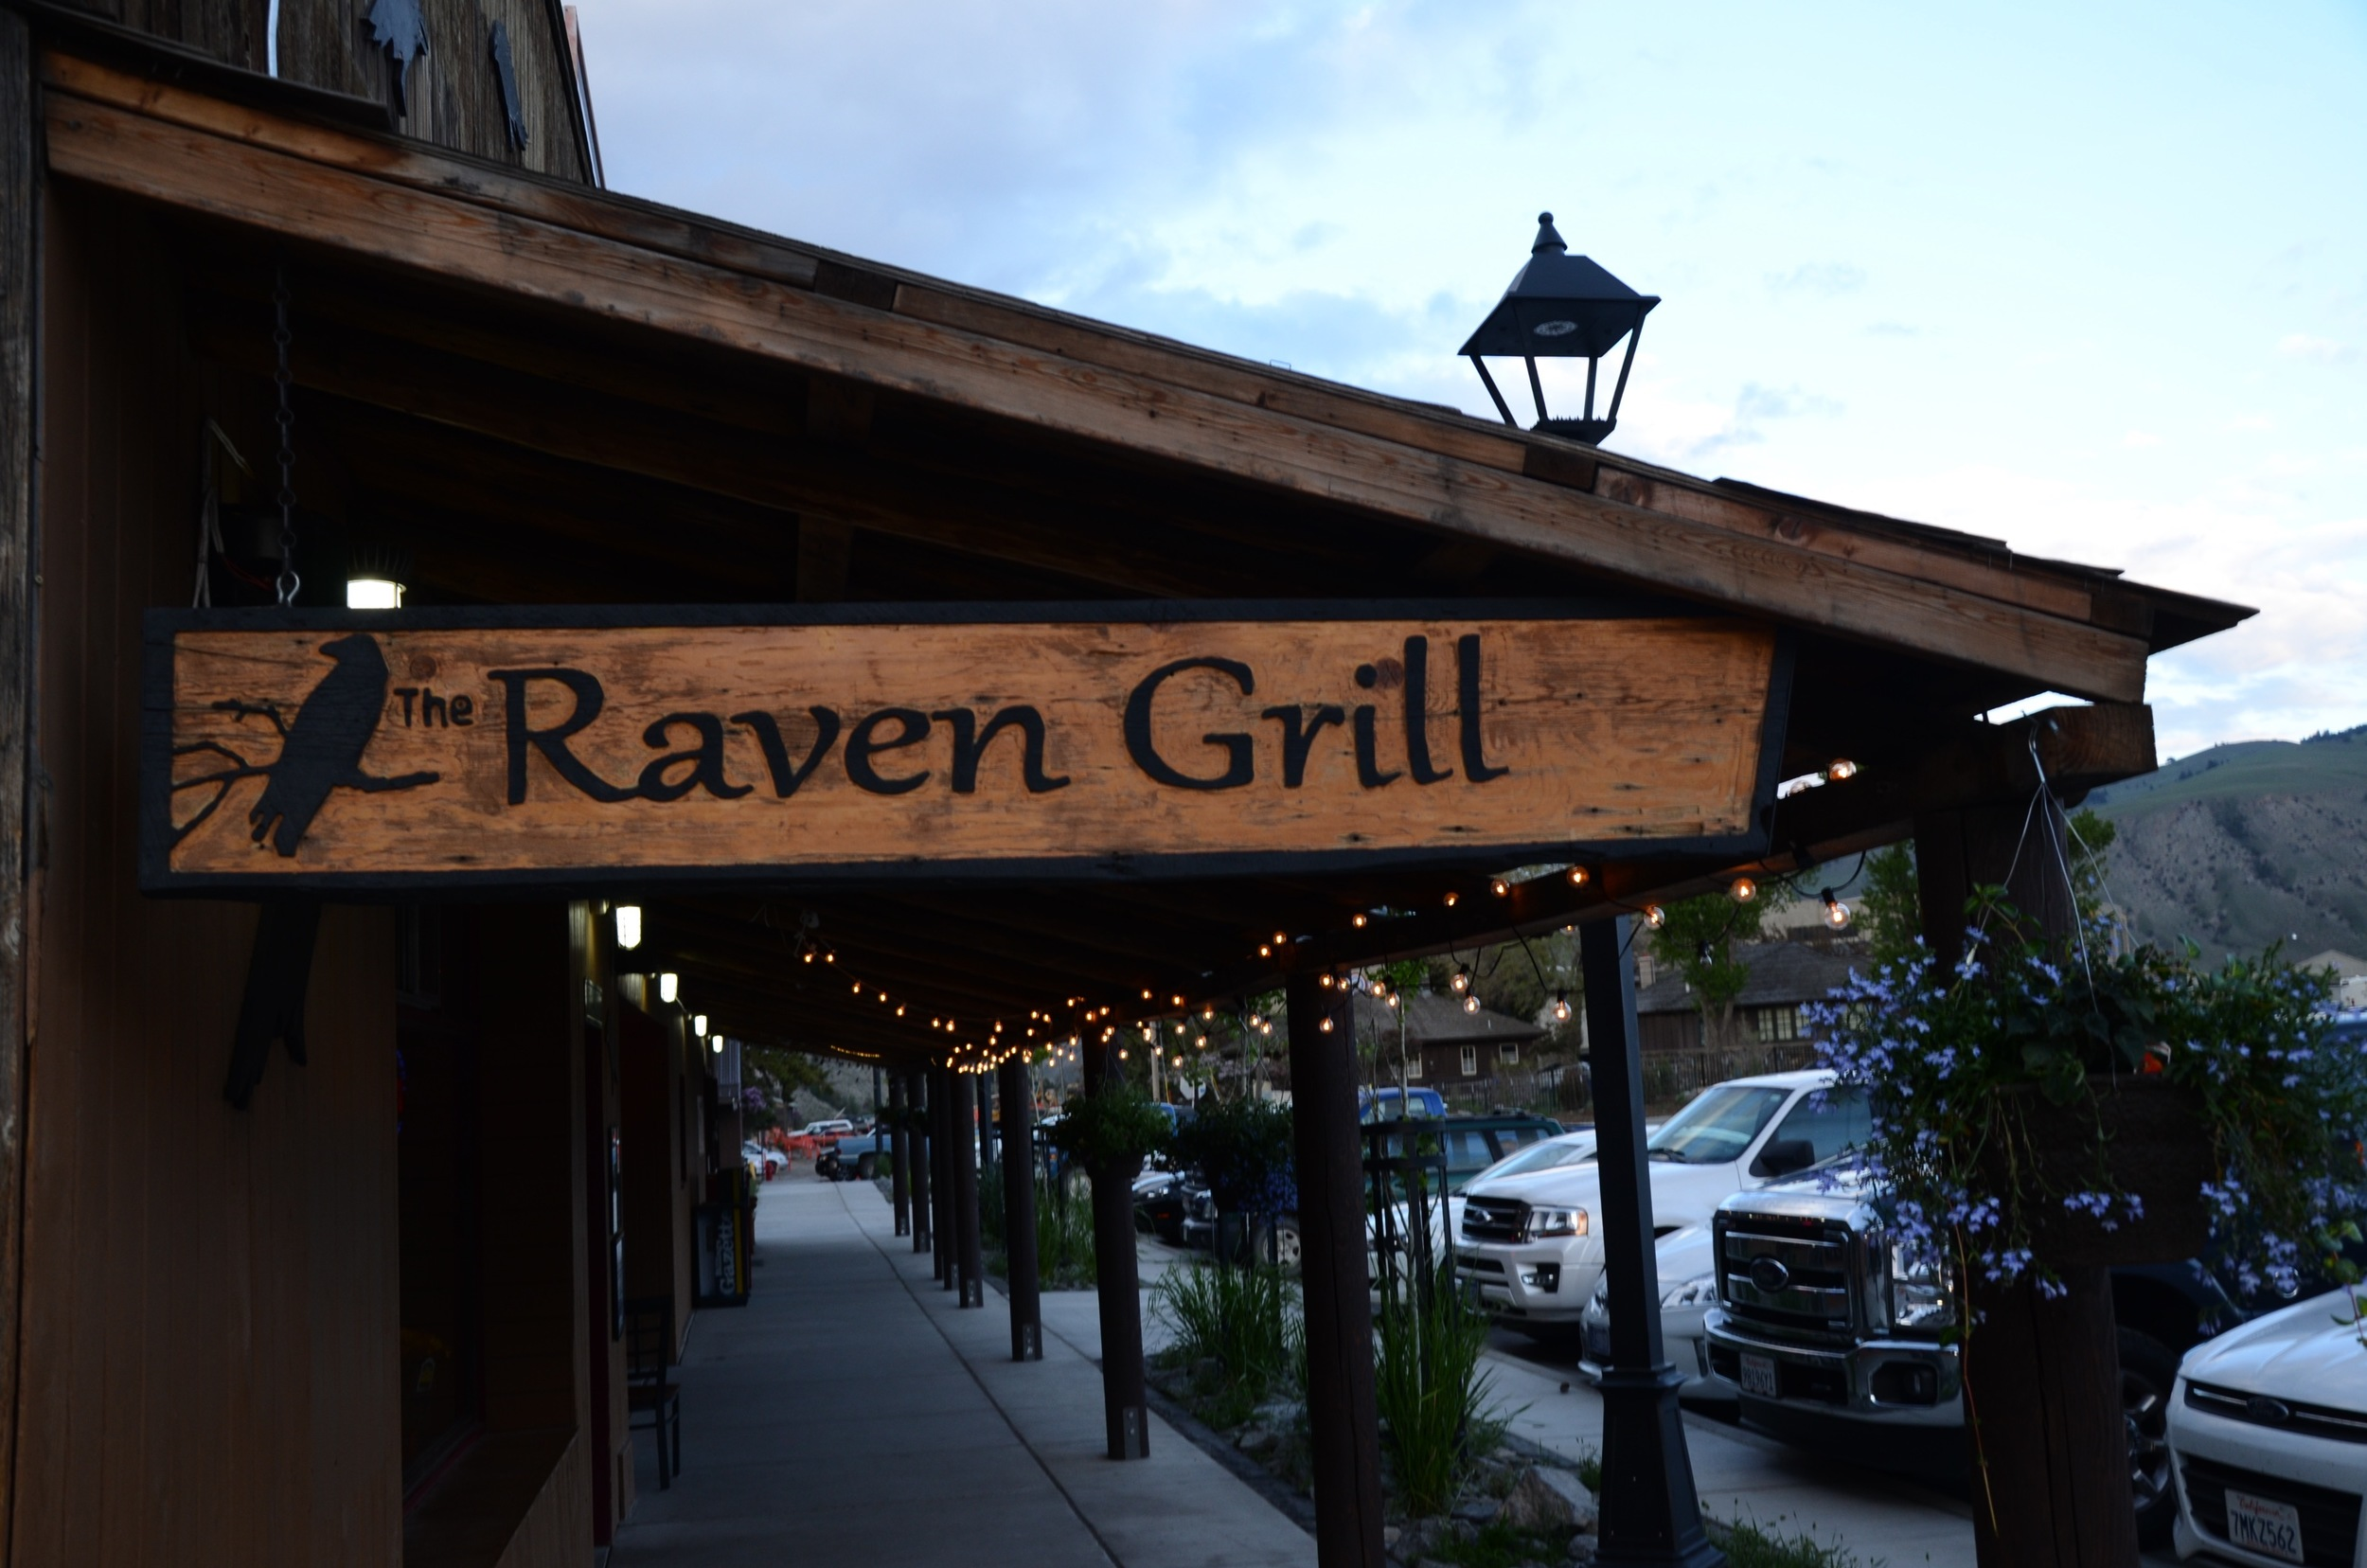 The Raven Grill